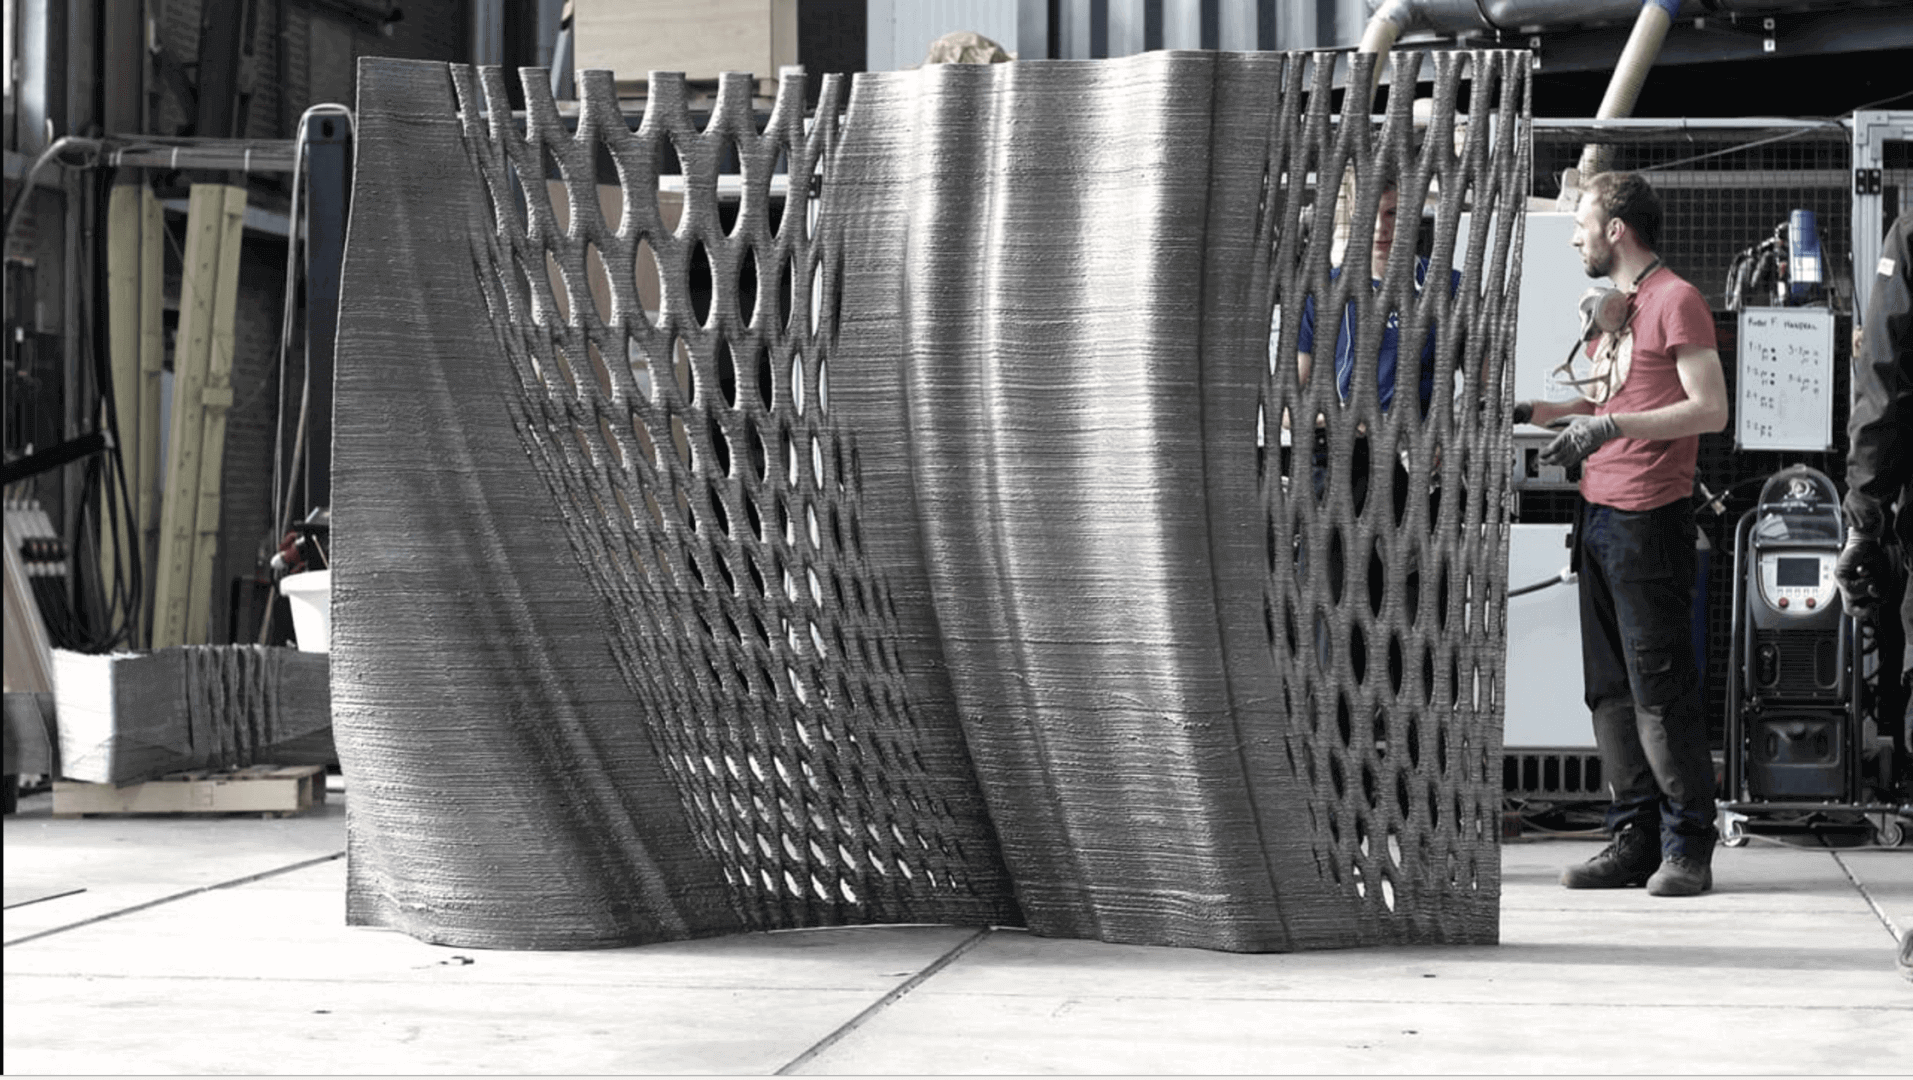 MX3D's Long-Awaited 3D Printed Bridge Project Evolves & Progresses On | All3DP